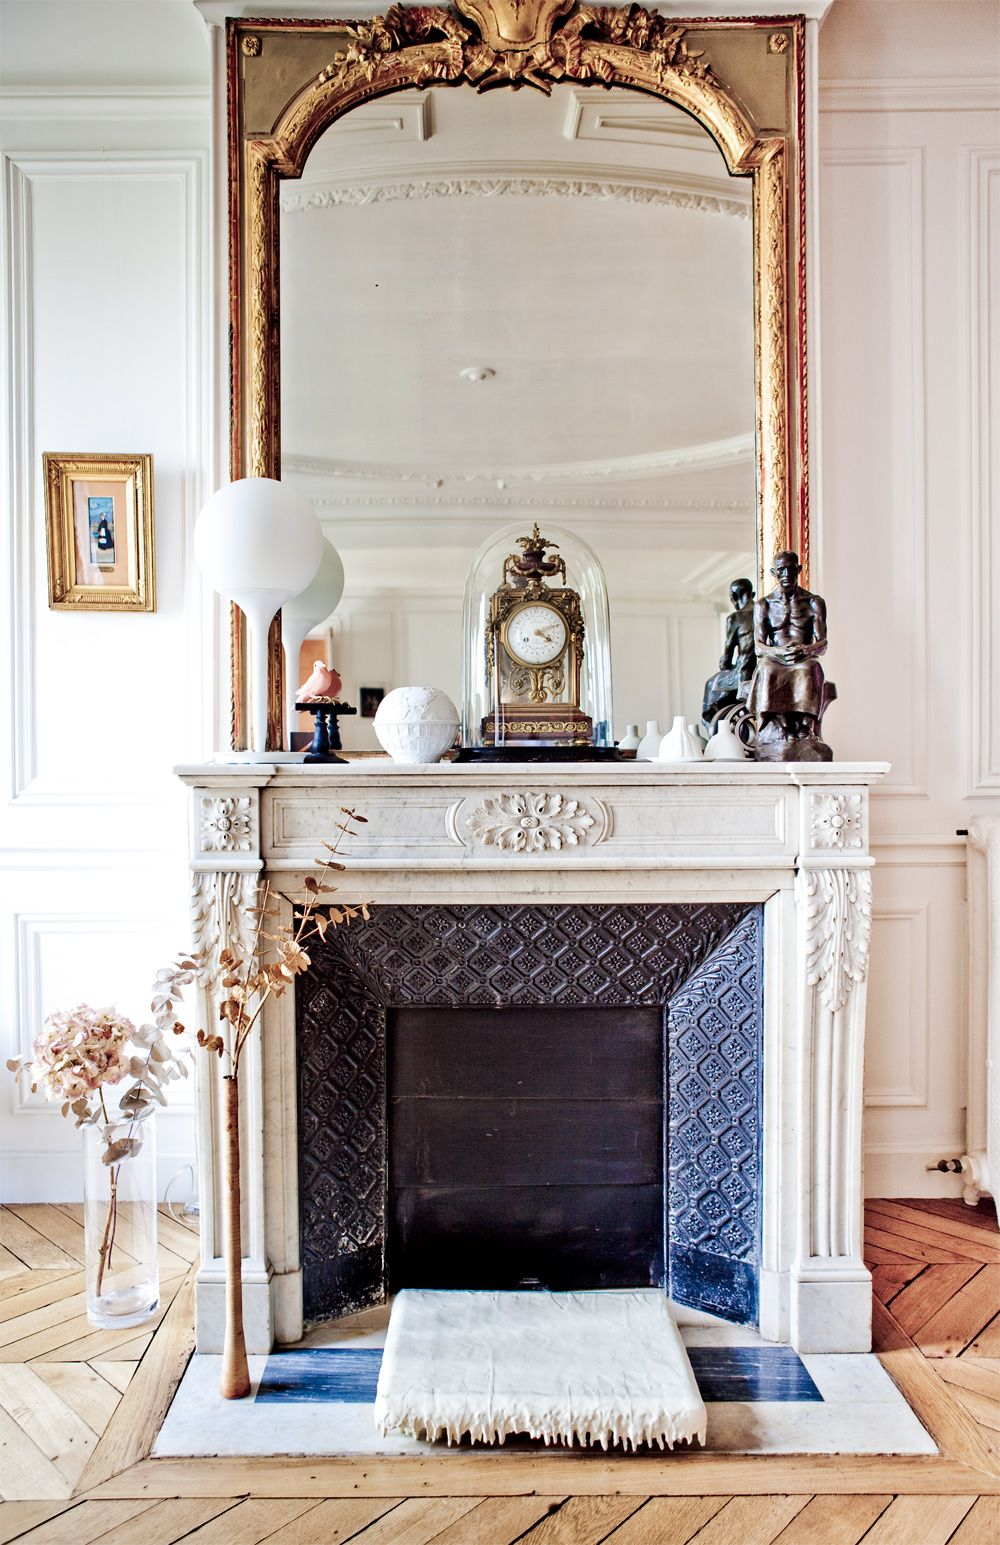 Fireplace by louise desrosiers 주거거실 pinterest interiors